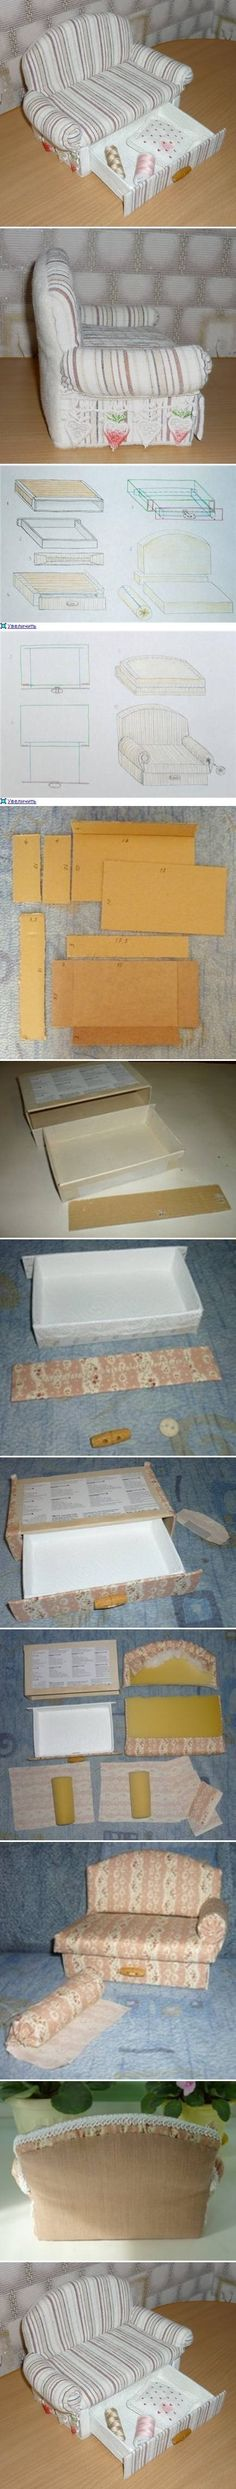 Cardboard Sofa With Drawer Pictures, Photos, and Images for Facebook, Tumblr, Pinterest, and Twitter